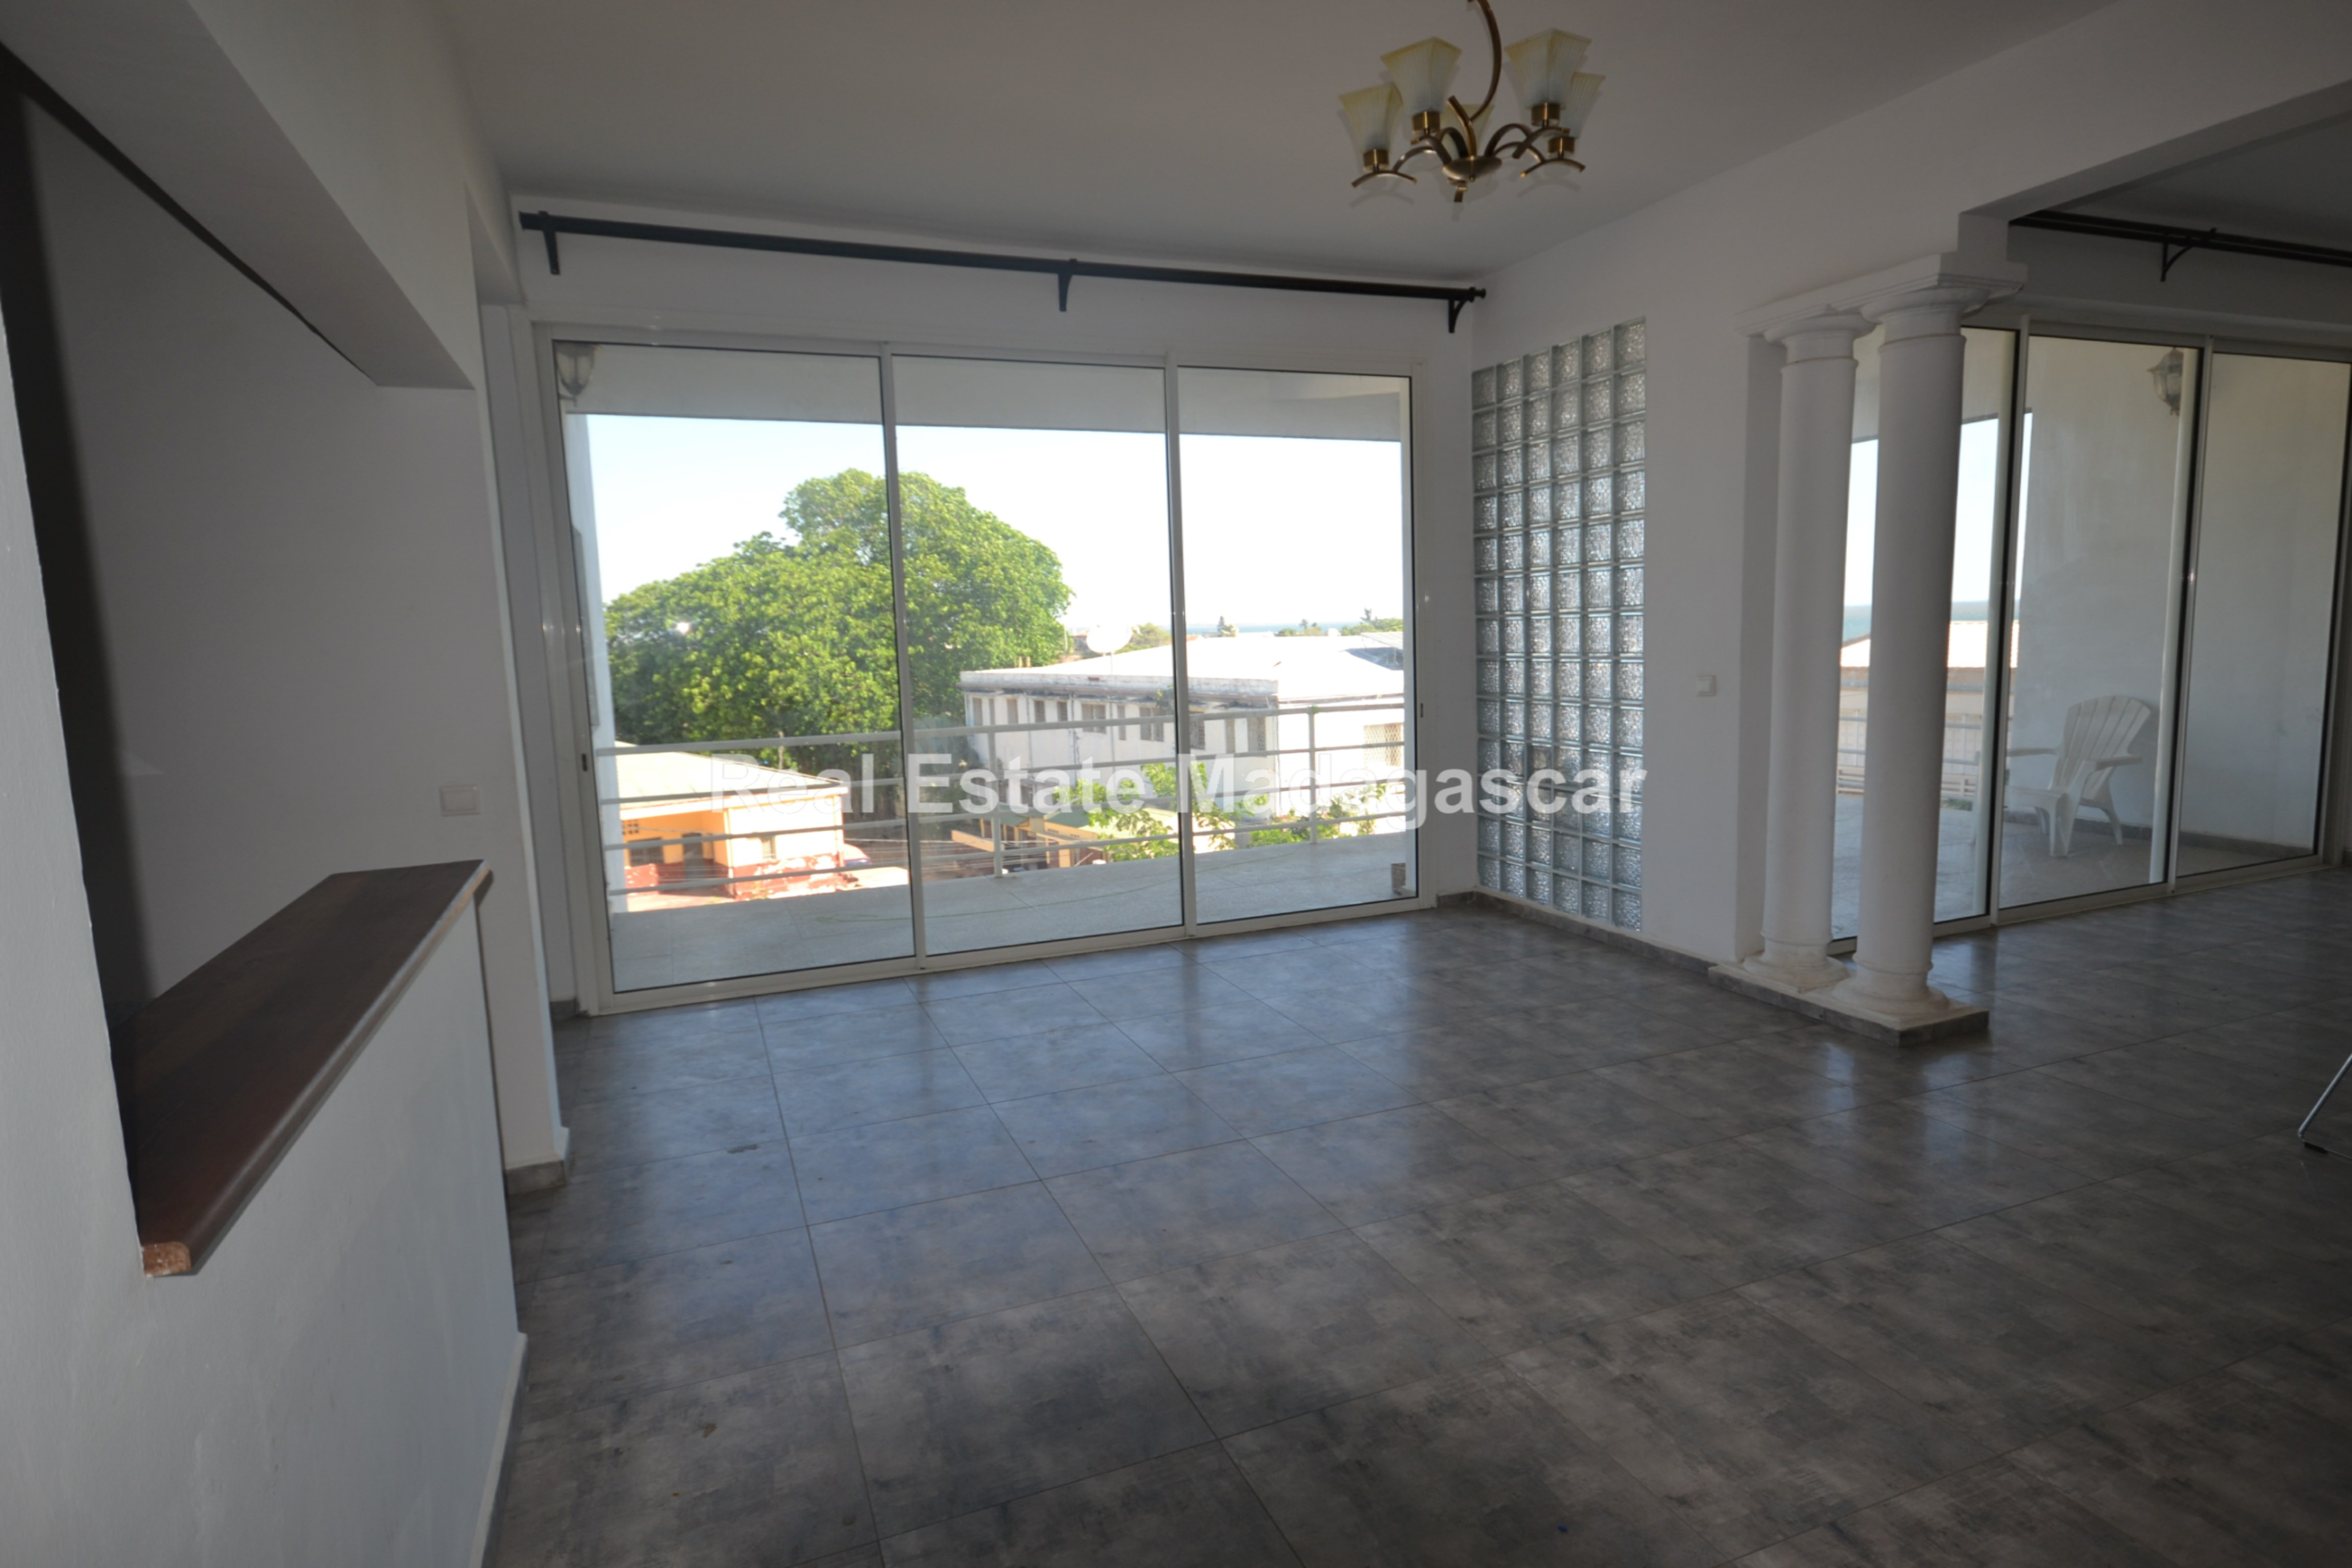 unfurnished-apartment-for-rent-1.jpg